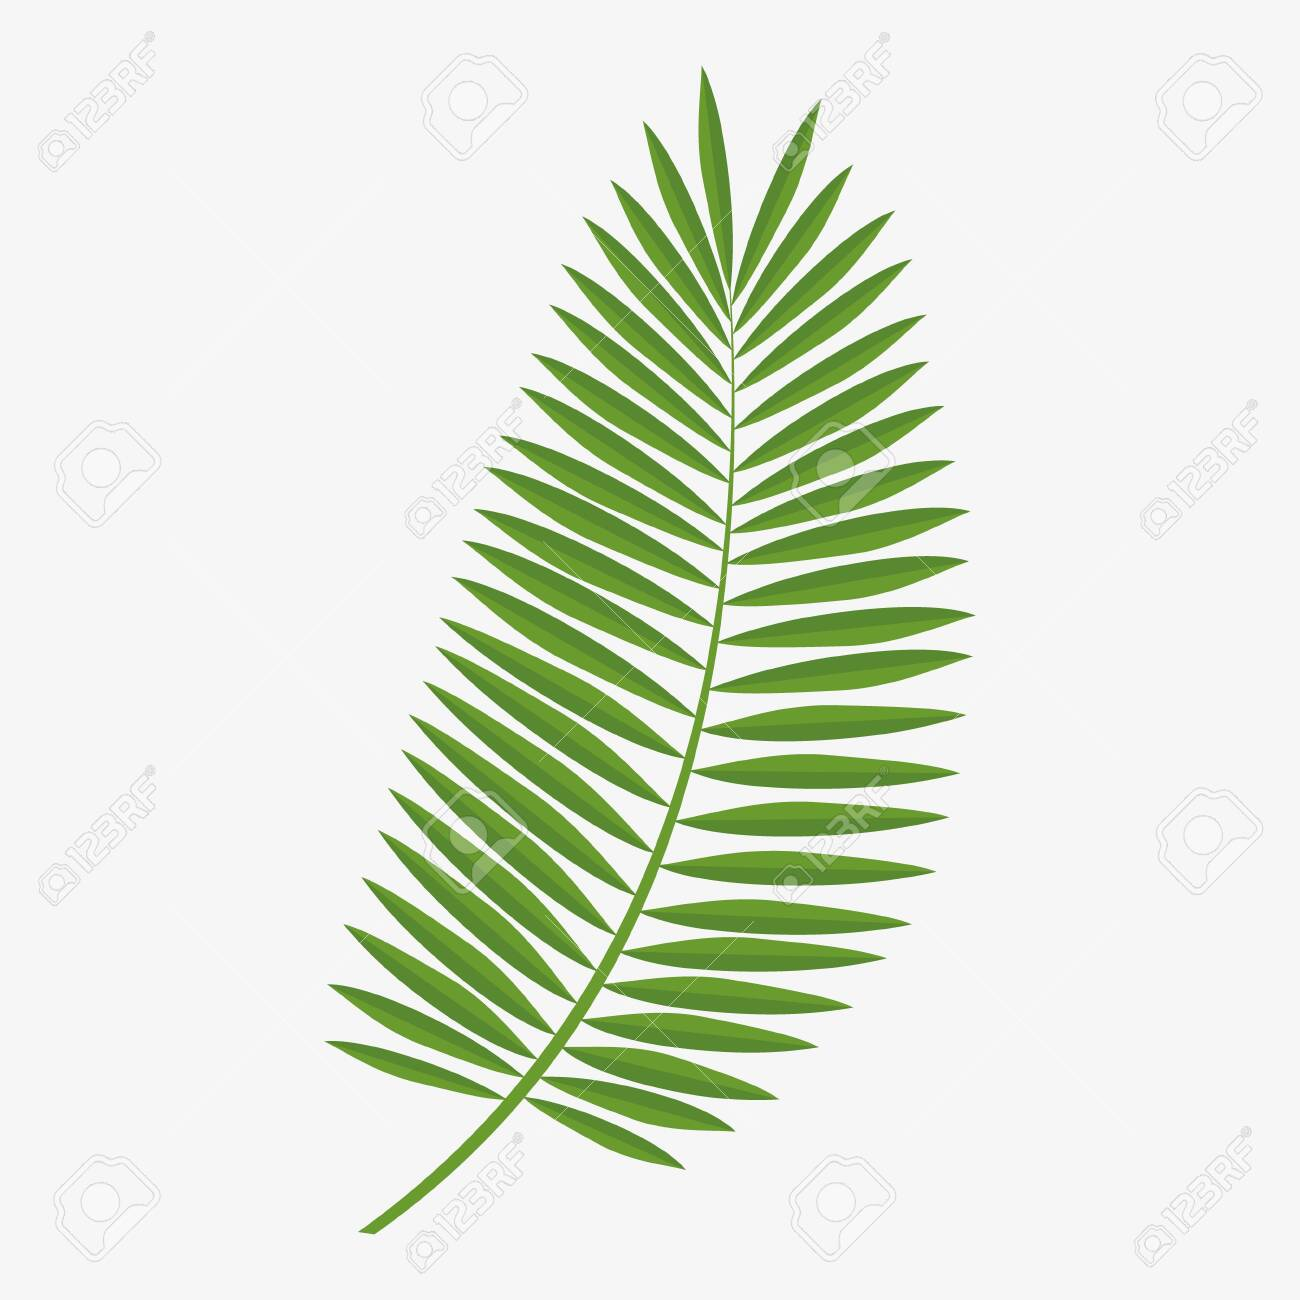 Vector graphics, green palm leaf.Graphics element. - 150321500